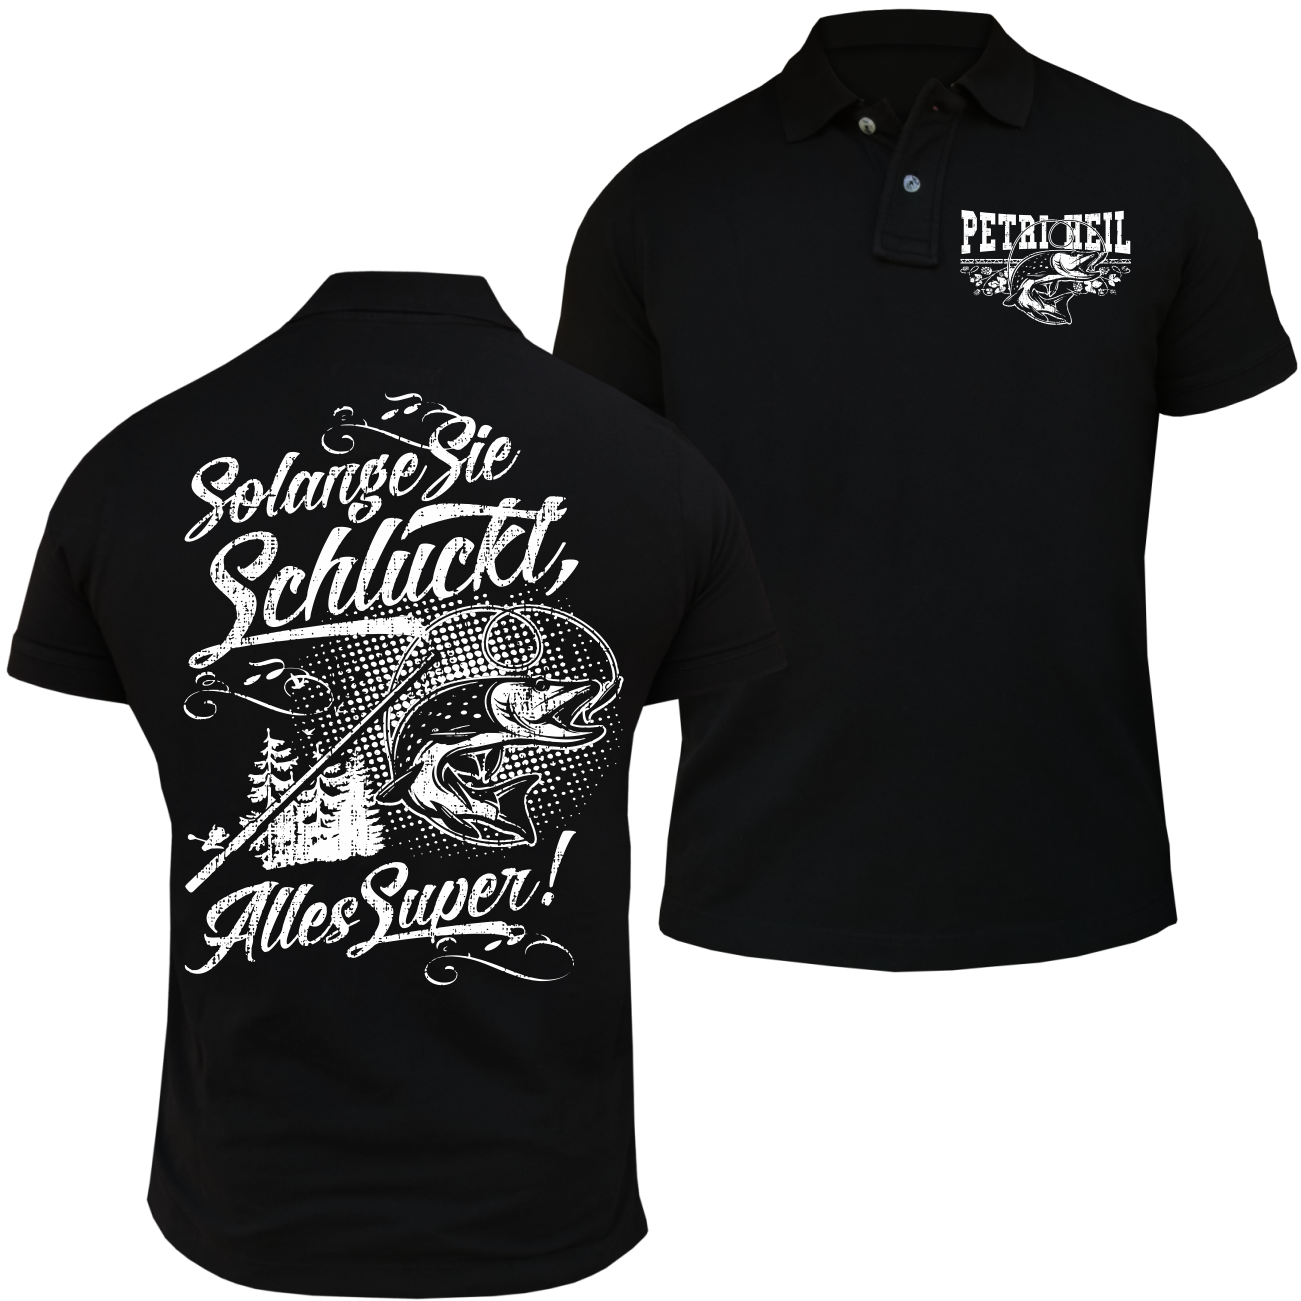 polo shirt solange sie schluckt m nner hobby angler fische hecht spruch geschenk ebay. Black Bedroom Furniture Sets. Home Design Ideas